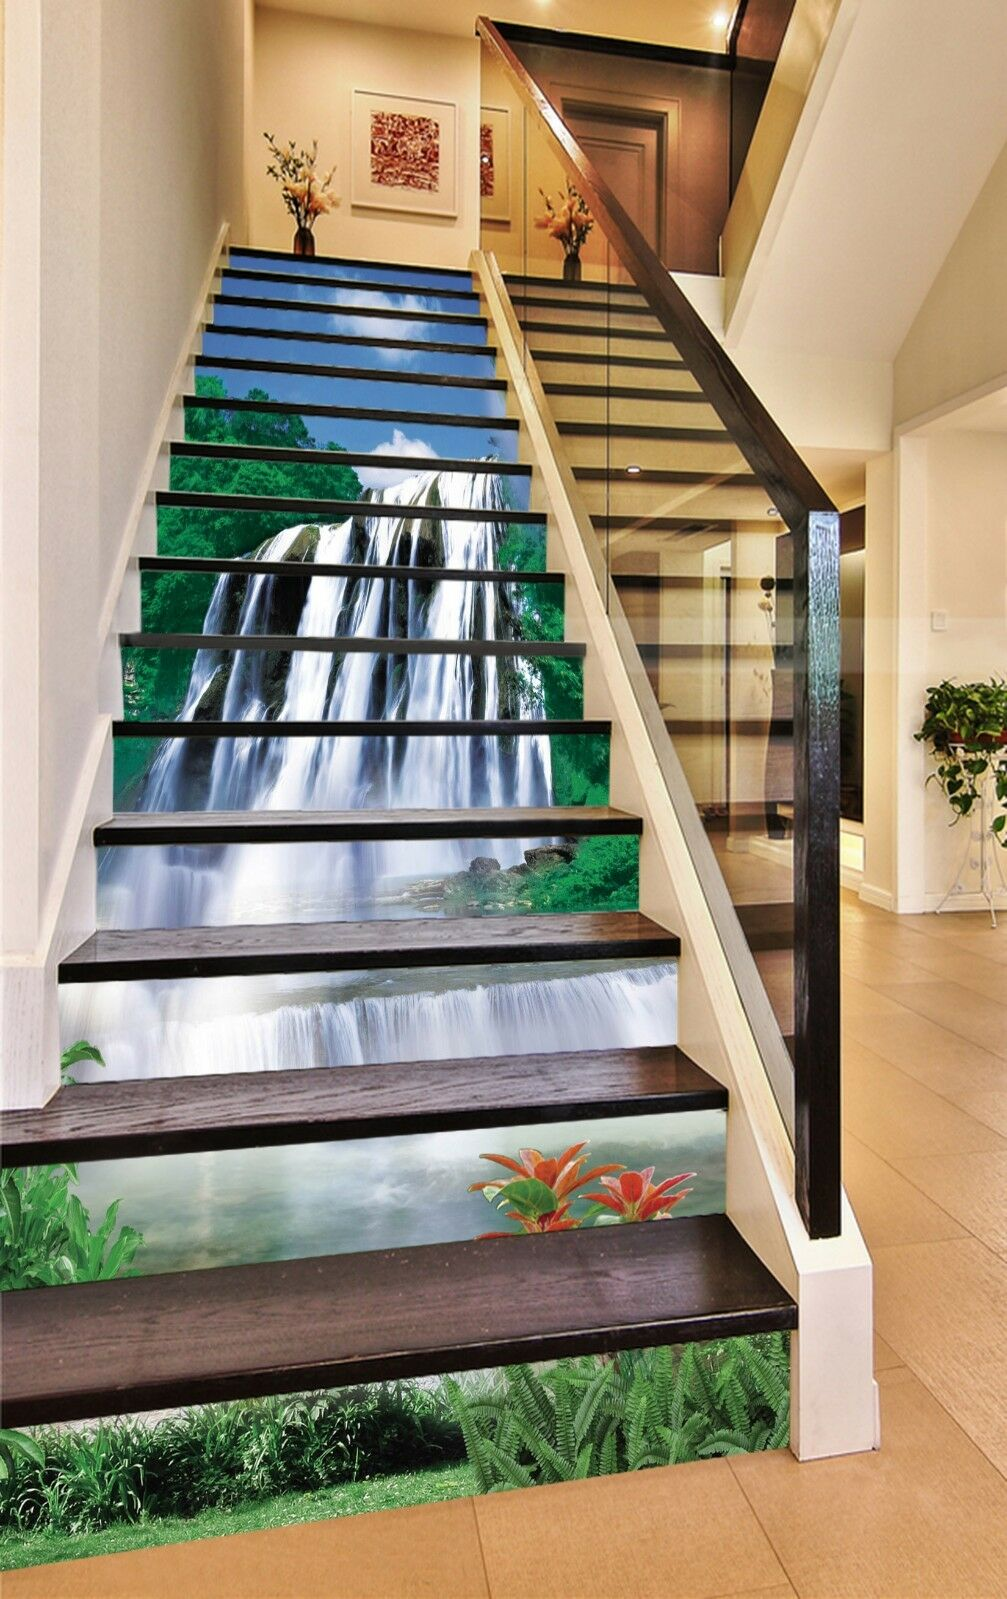 3D Sky falls 7 Stair Risers Decoration Photo Mural Vinyl Decal Wallpaper UK